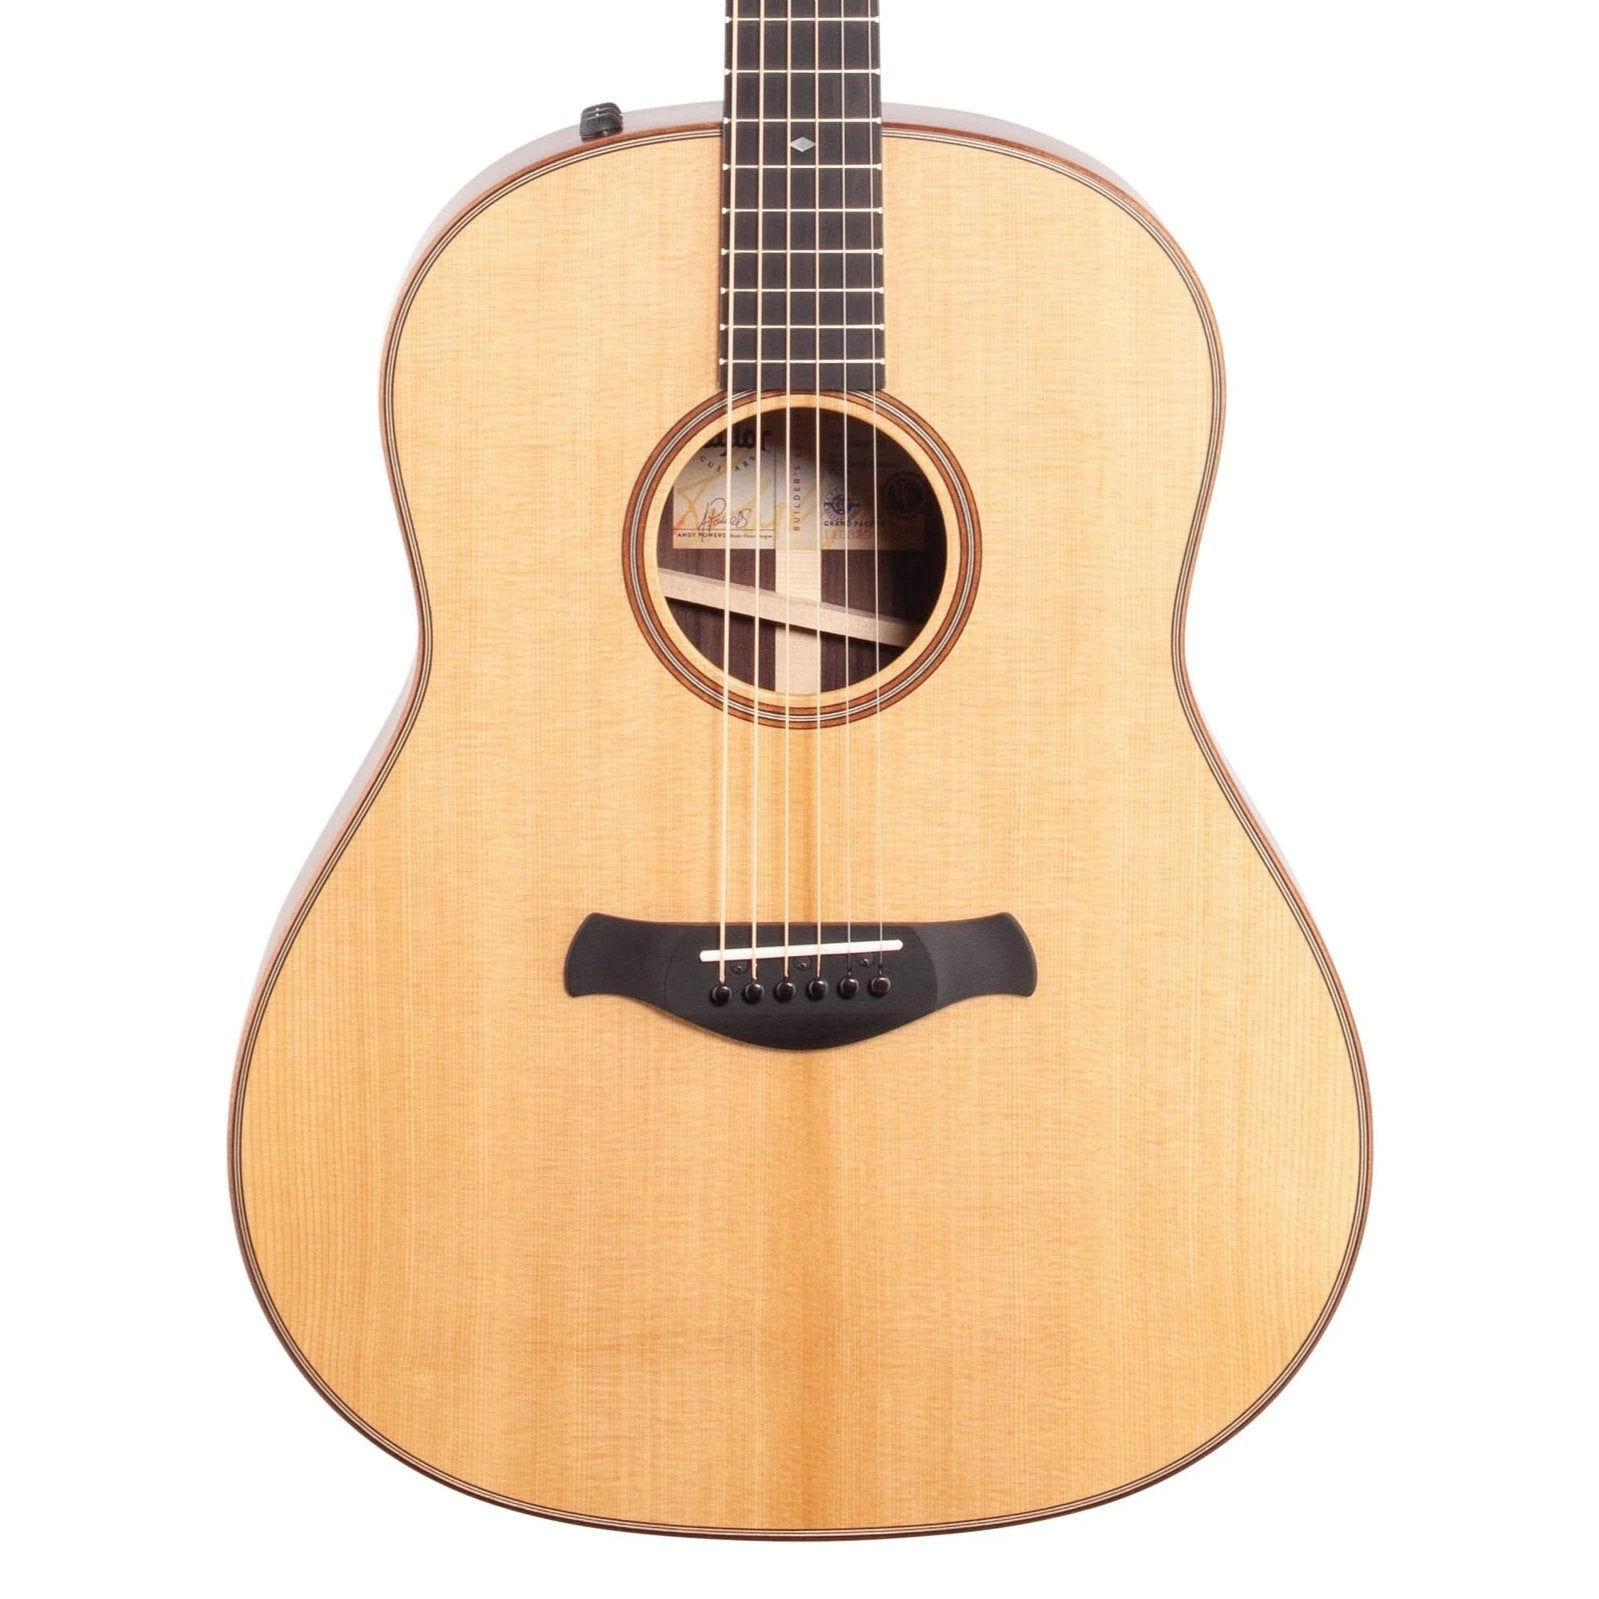 Taylor 717e Builder's Edition Grand Pacific Acoustic-Electric Guitar (with Case), Natural